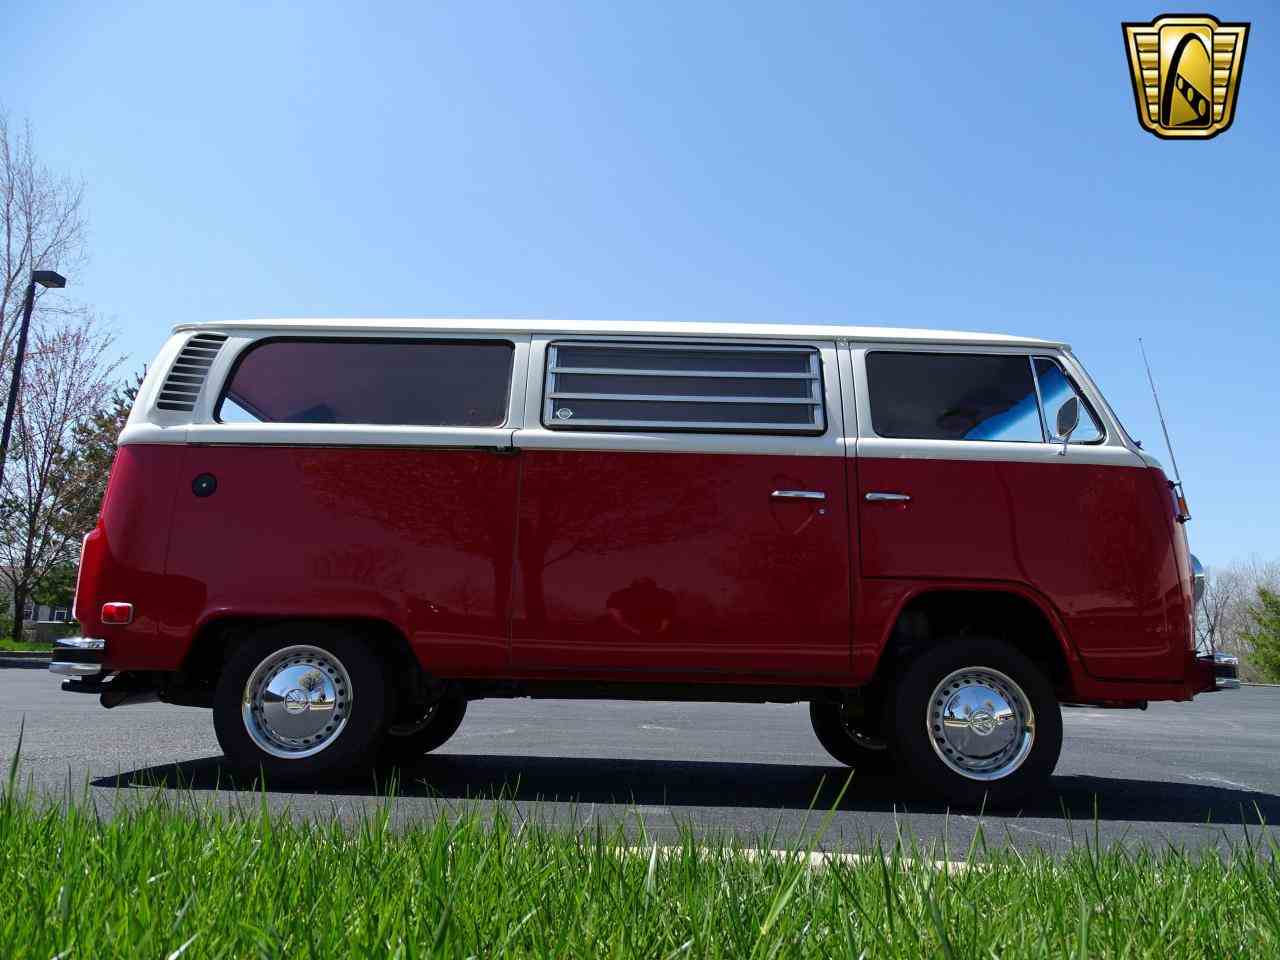 Large Picture of 1974 Volkswagen Westfalia Camper located in O'Fallon Illinois - $34,995.00 Offered by Gateway Classic Cars - St. Louis - NEEL